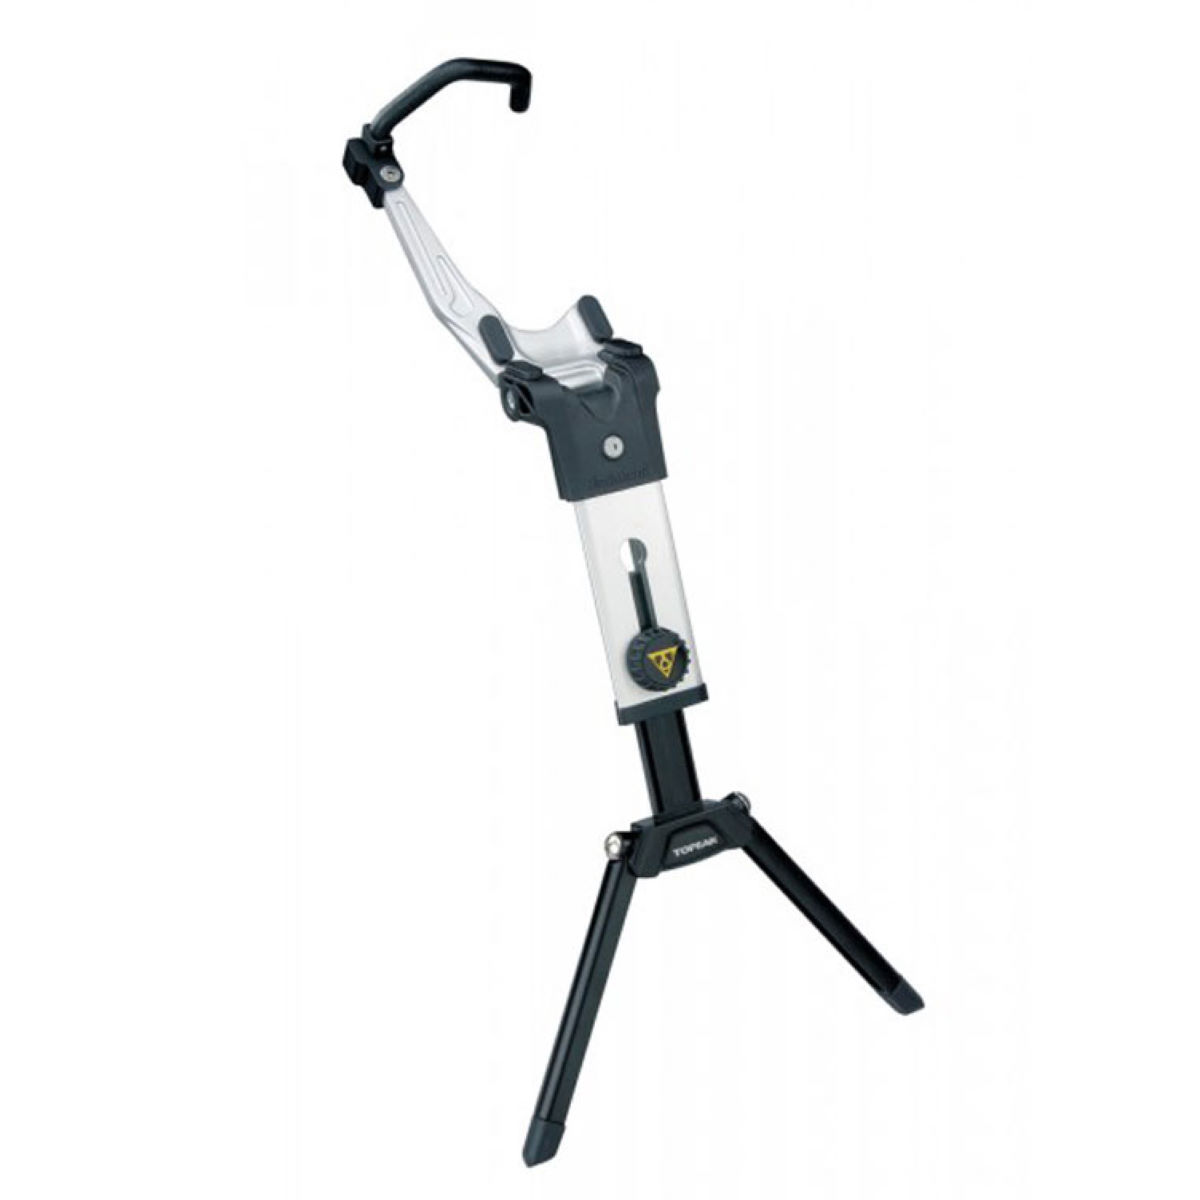 Topeak Flash Stand Workstand